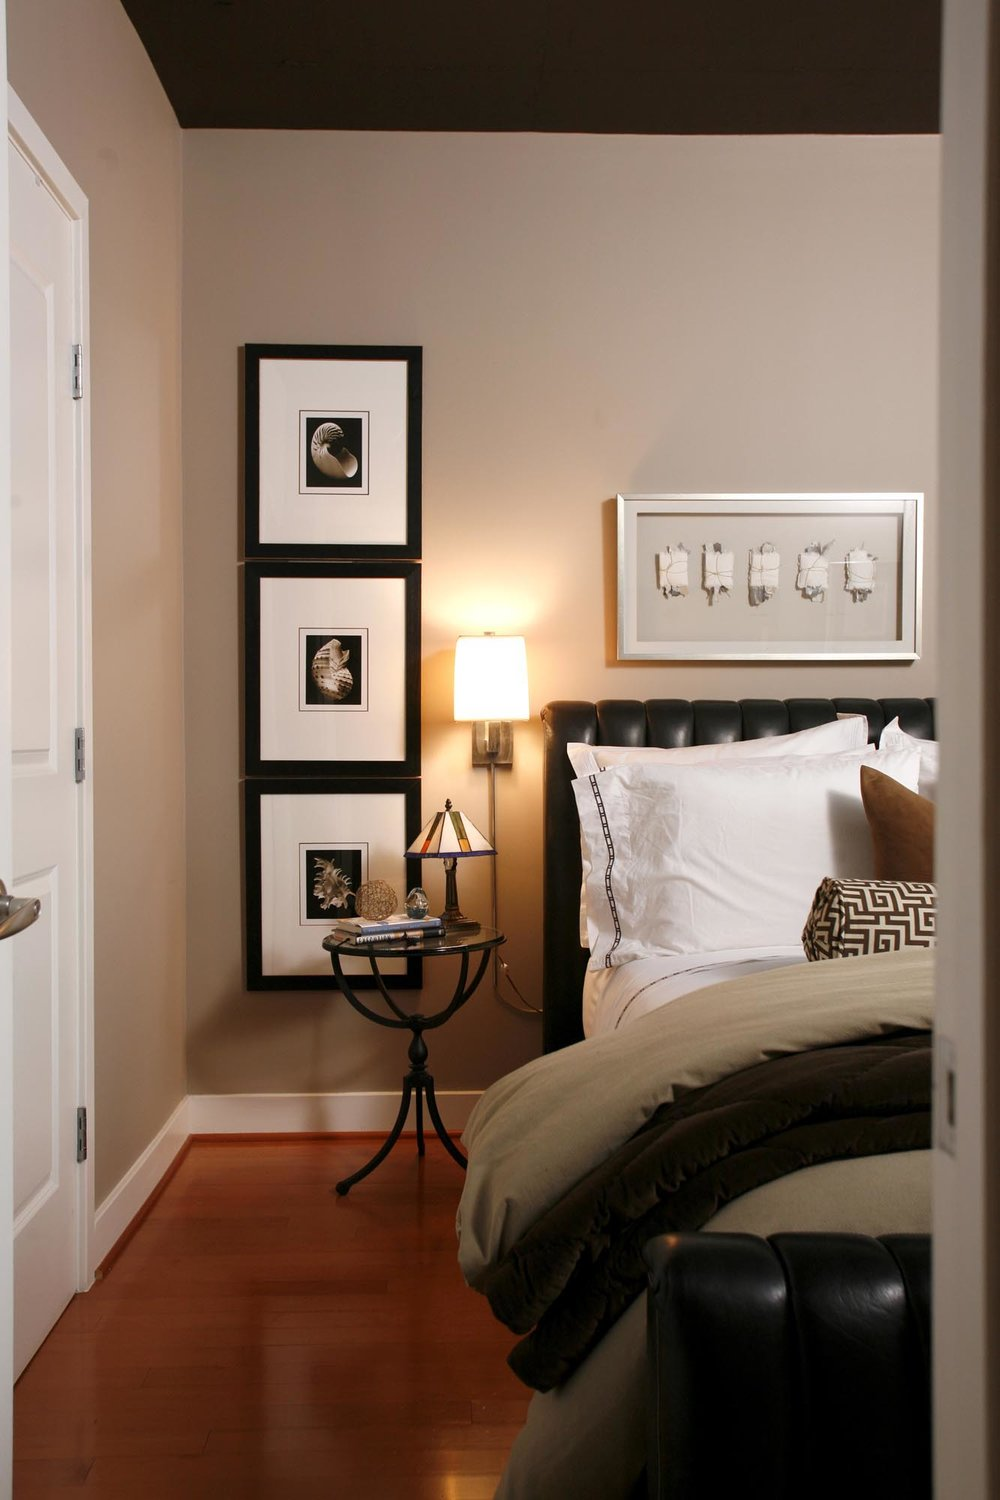 Condo Bedroom Design with frames hanged on light painted wall and stylish lights